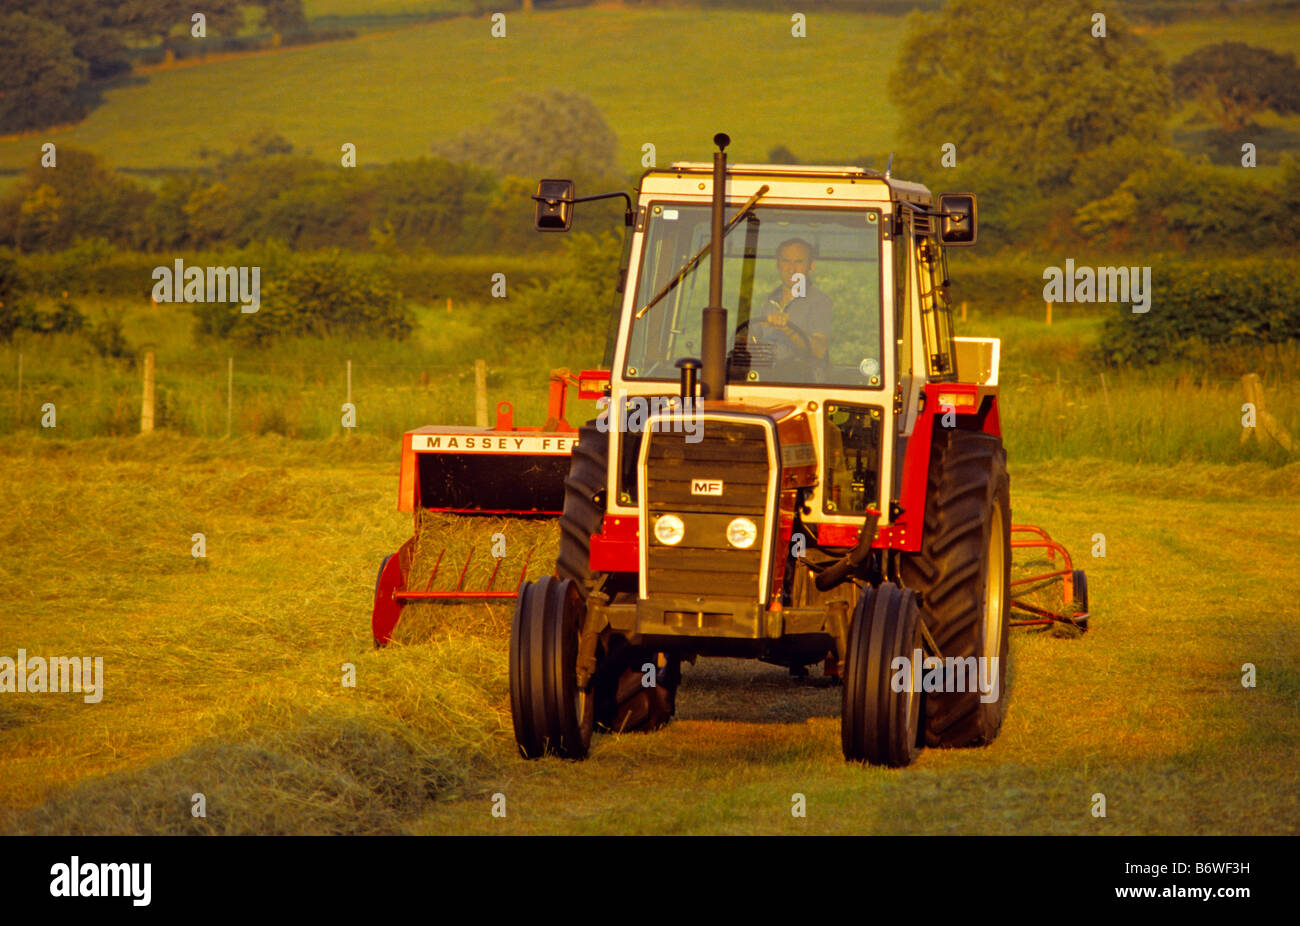 Farmer with old Massey Ferguson 690 Tractor and 124 Hay Baler, Wiltshire,  UK.